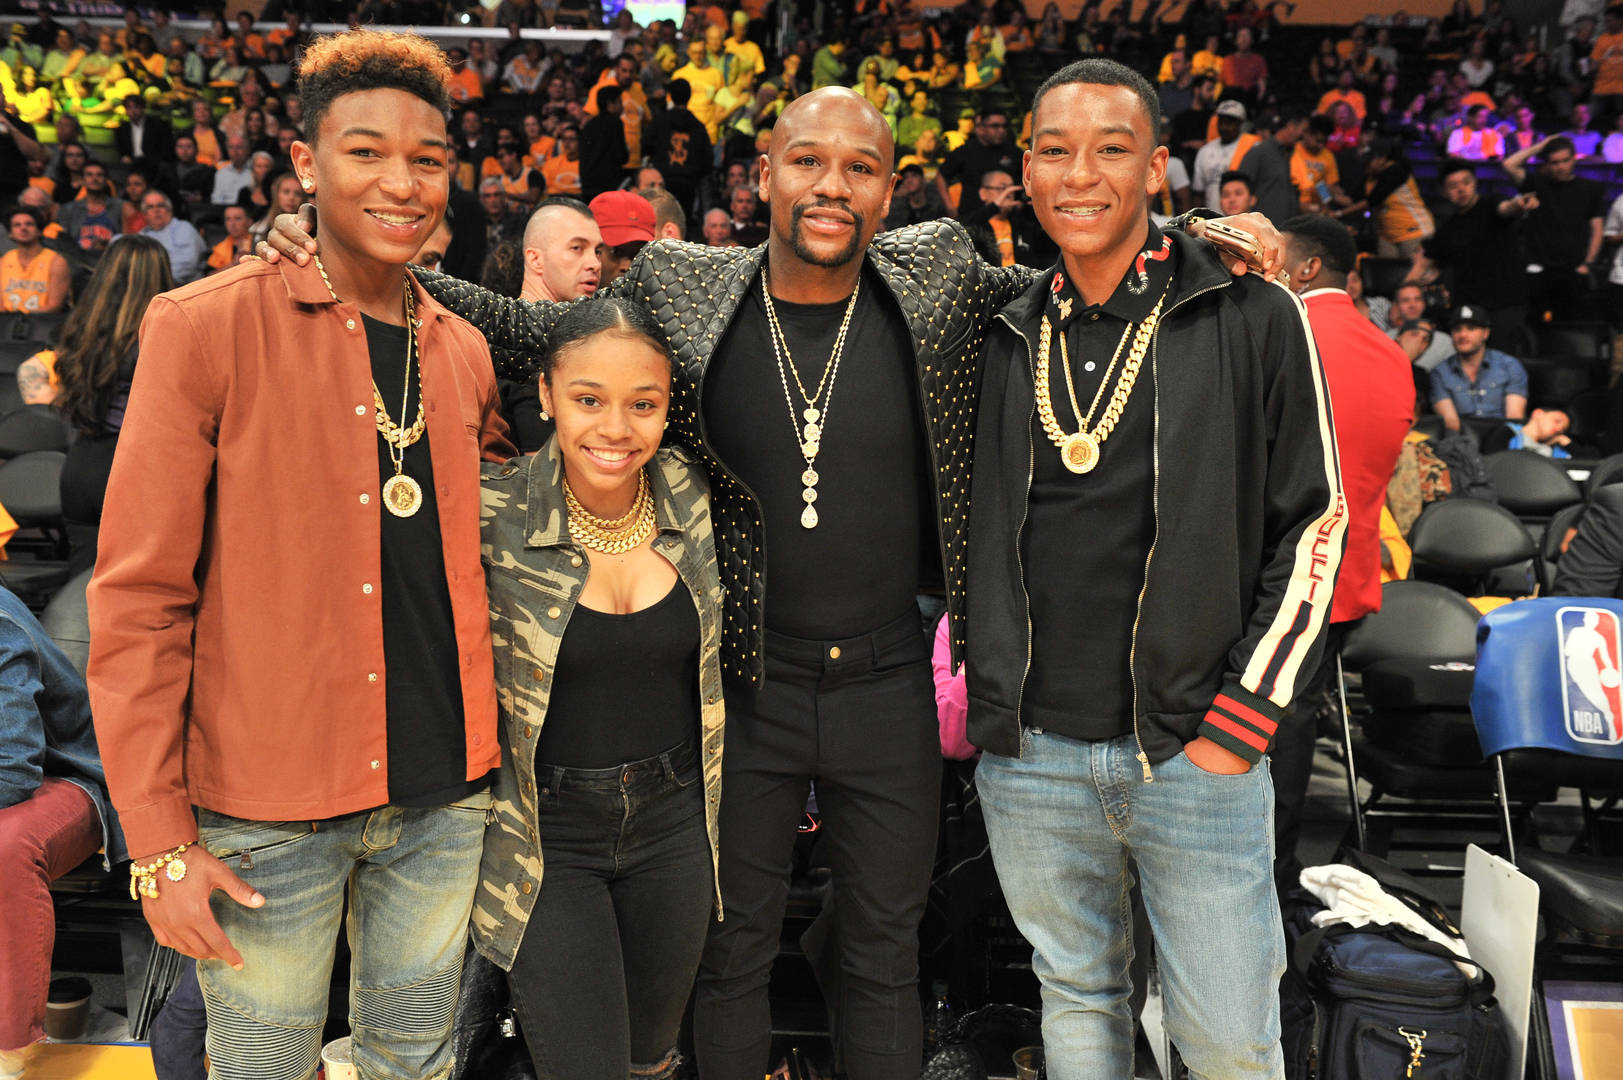 Iyanna YaYa Mayweather J. prince lawyer Kurt Schaffer NBA Youngboy baby mama stabbing Lapattra Jacobs case represent legal counsel court charges felony aggravated assault